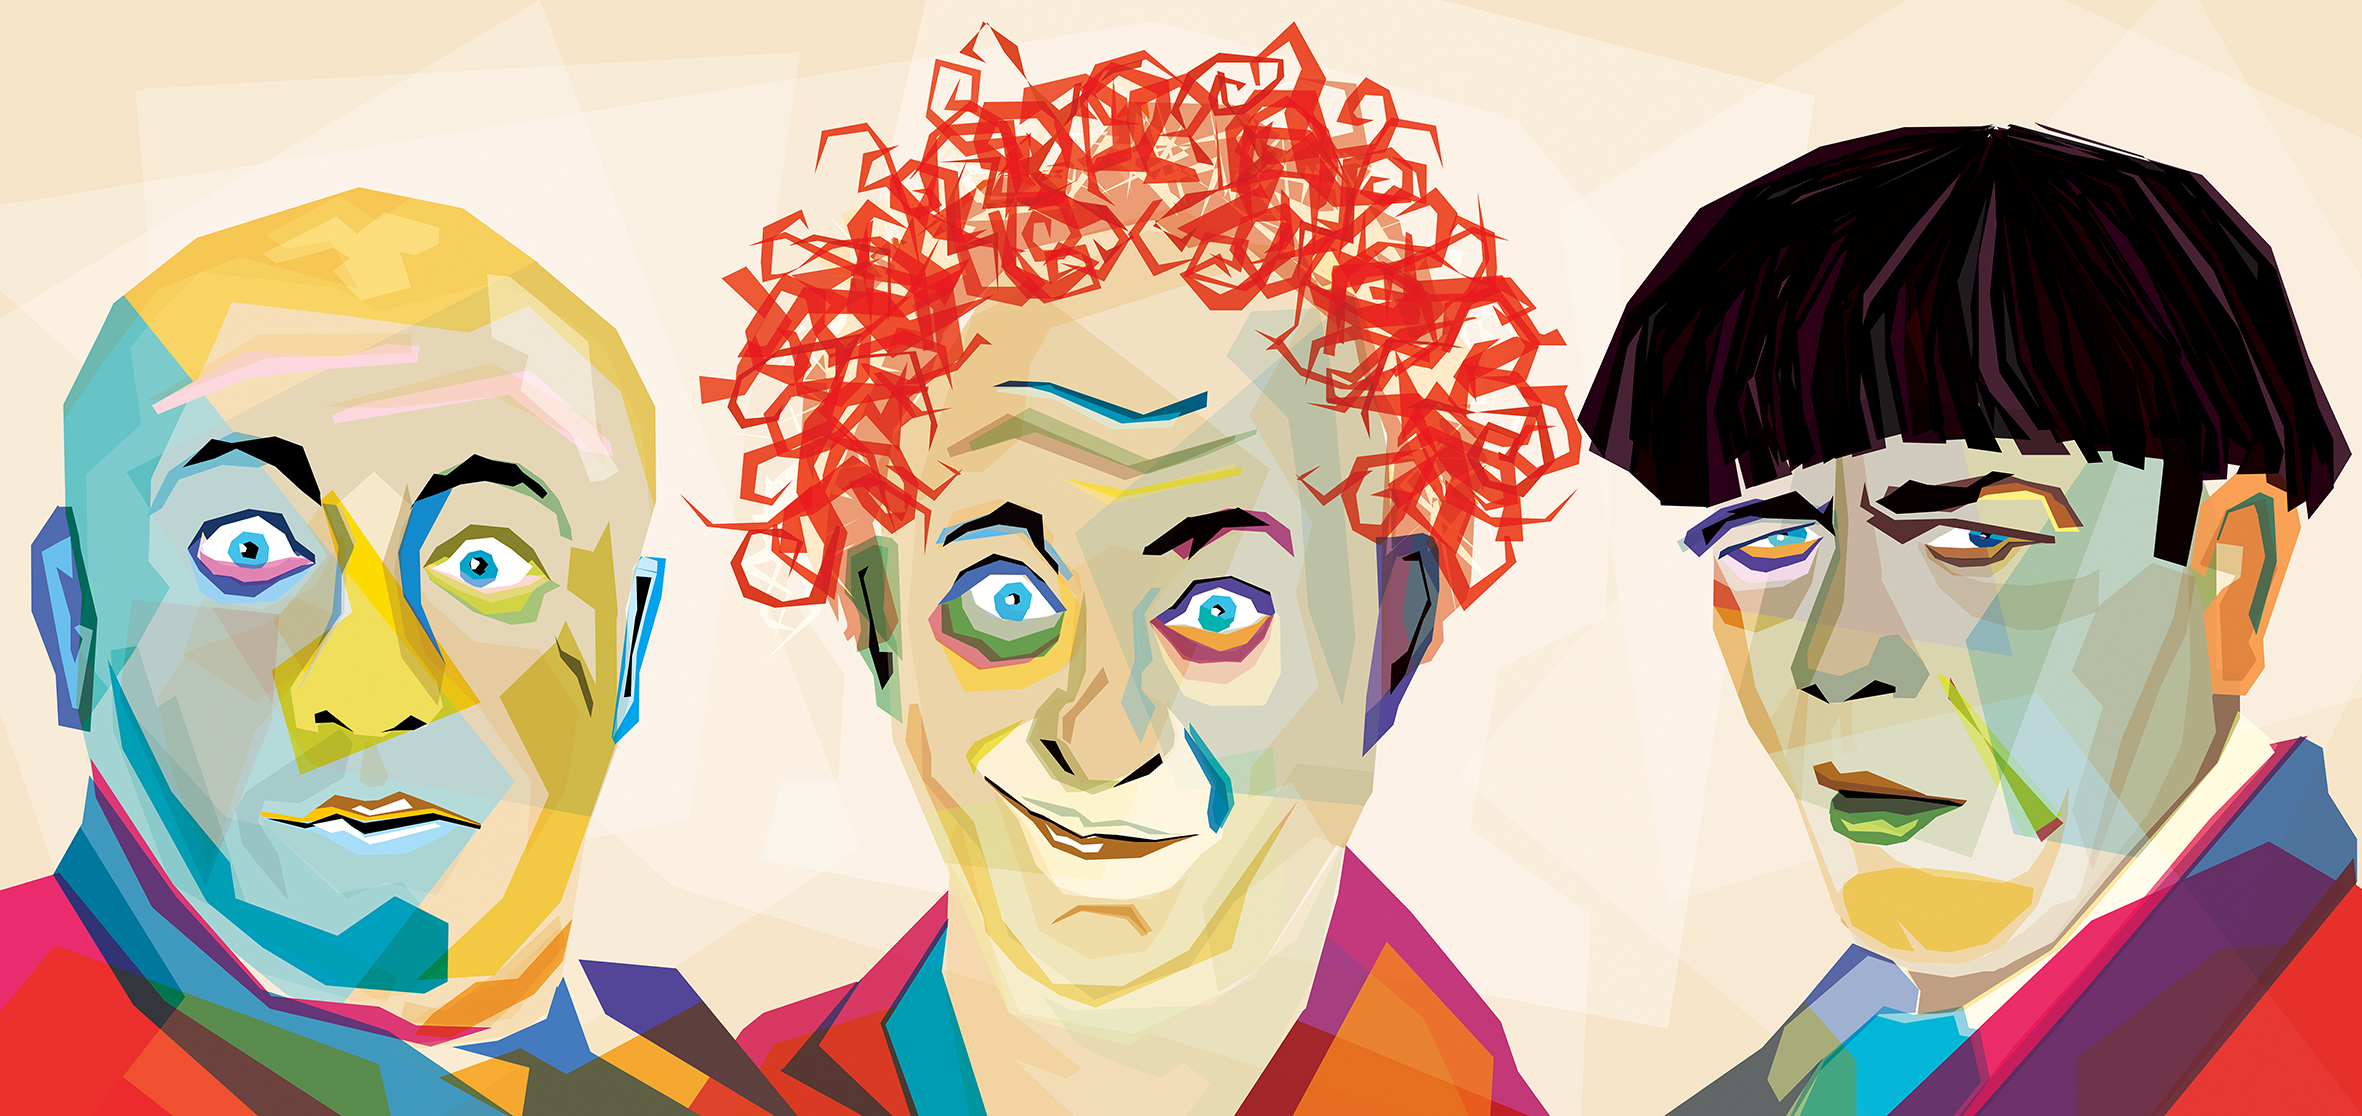 The Three Stooges by Gilberto Mevi